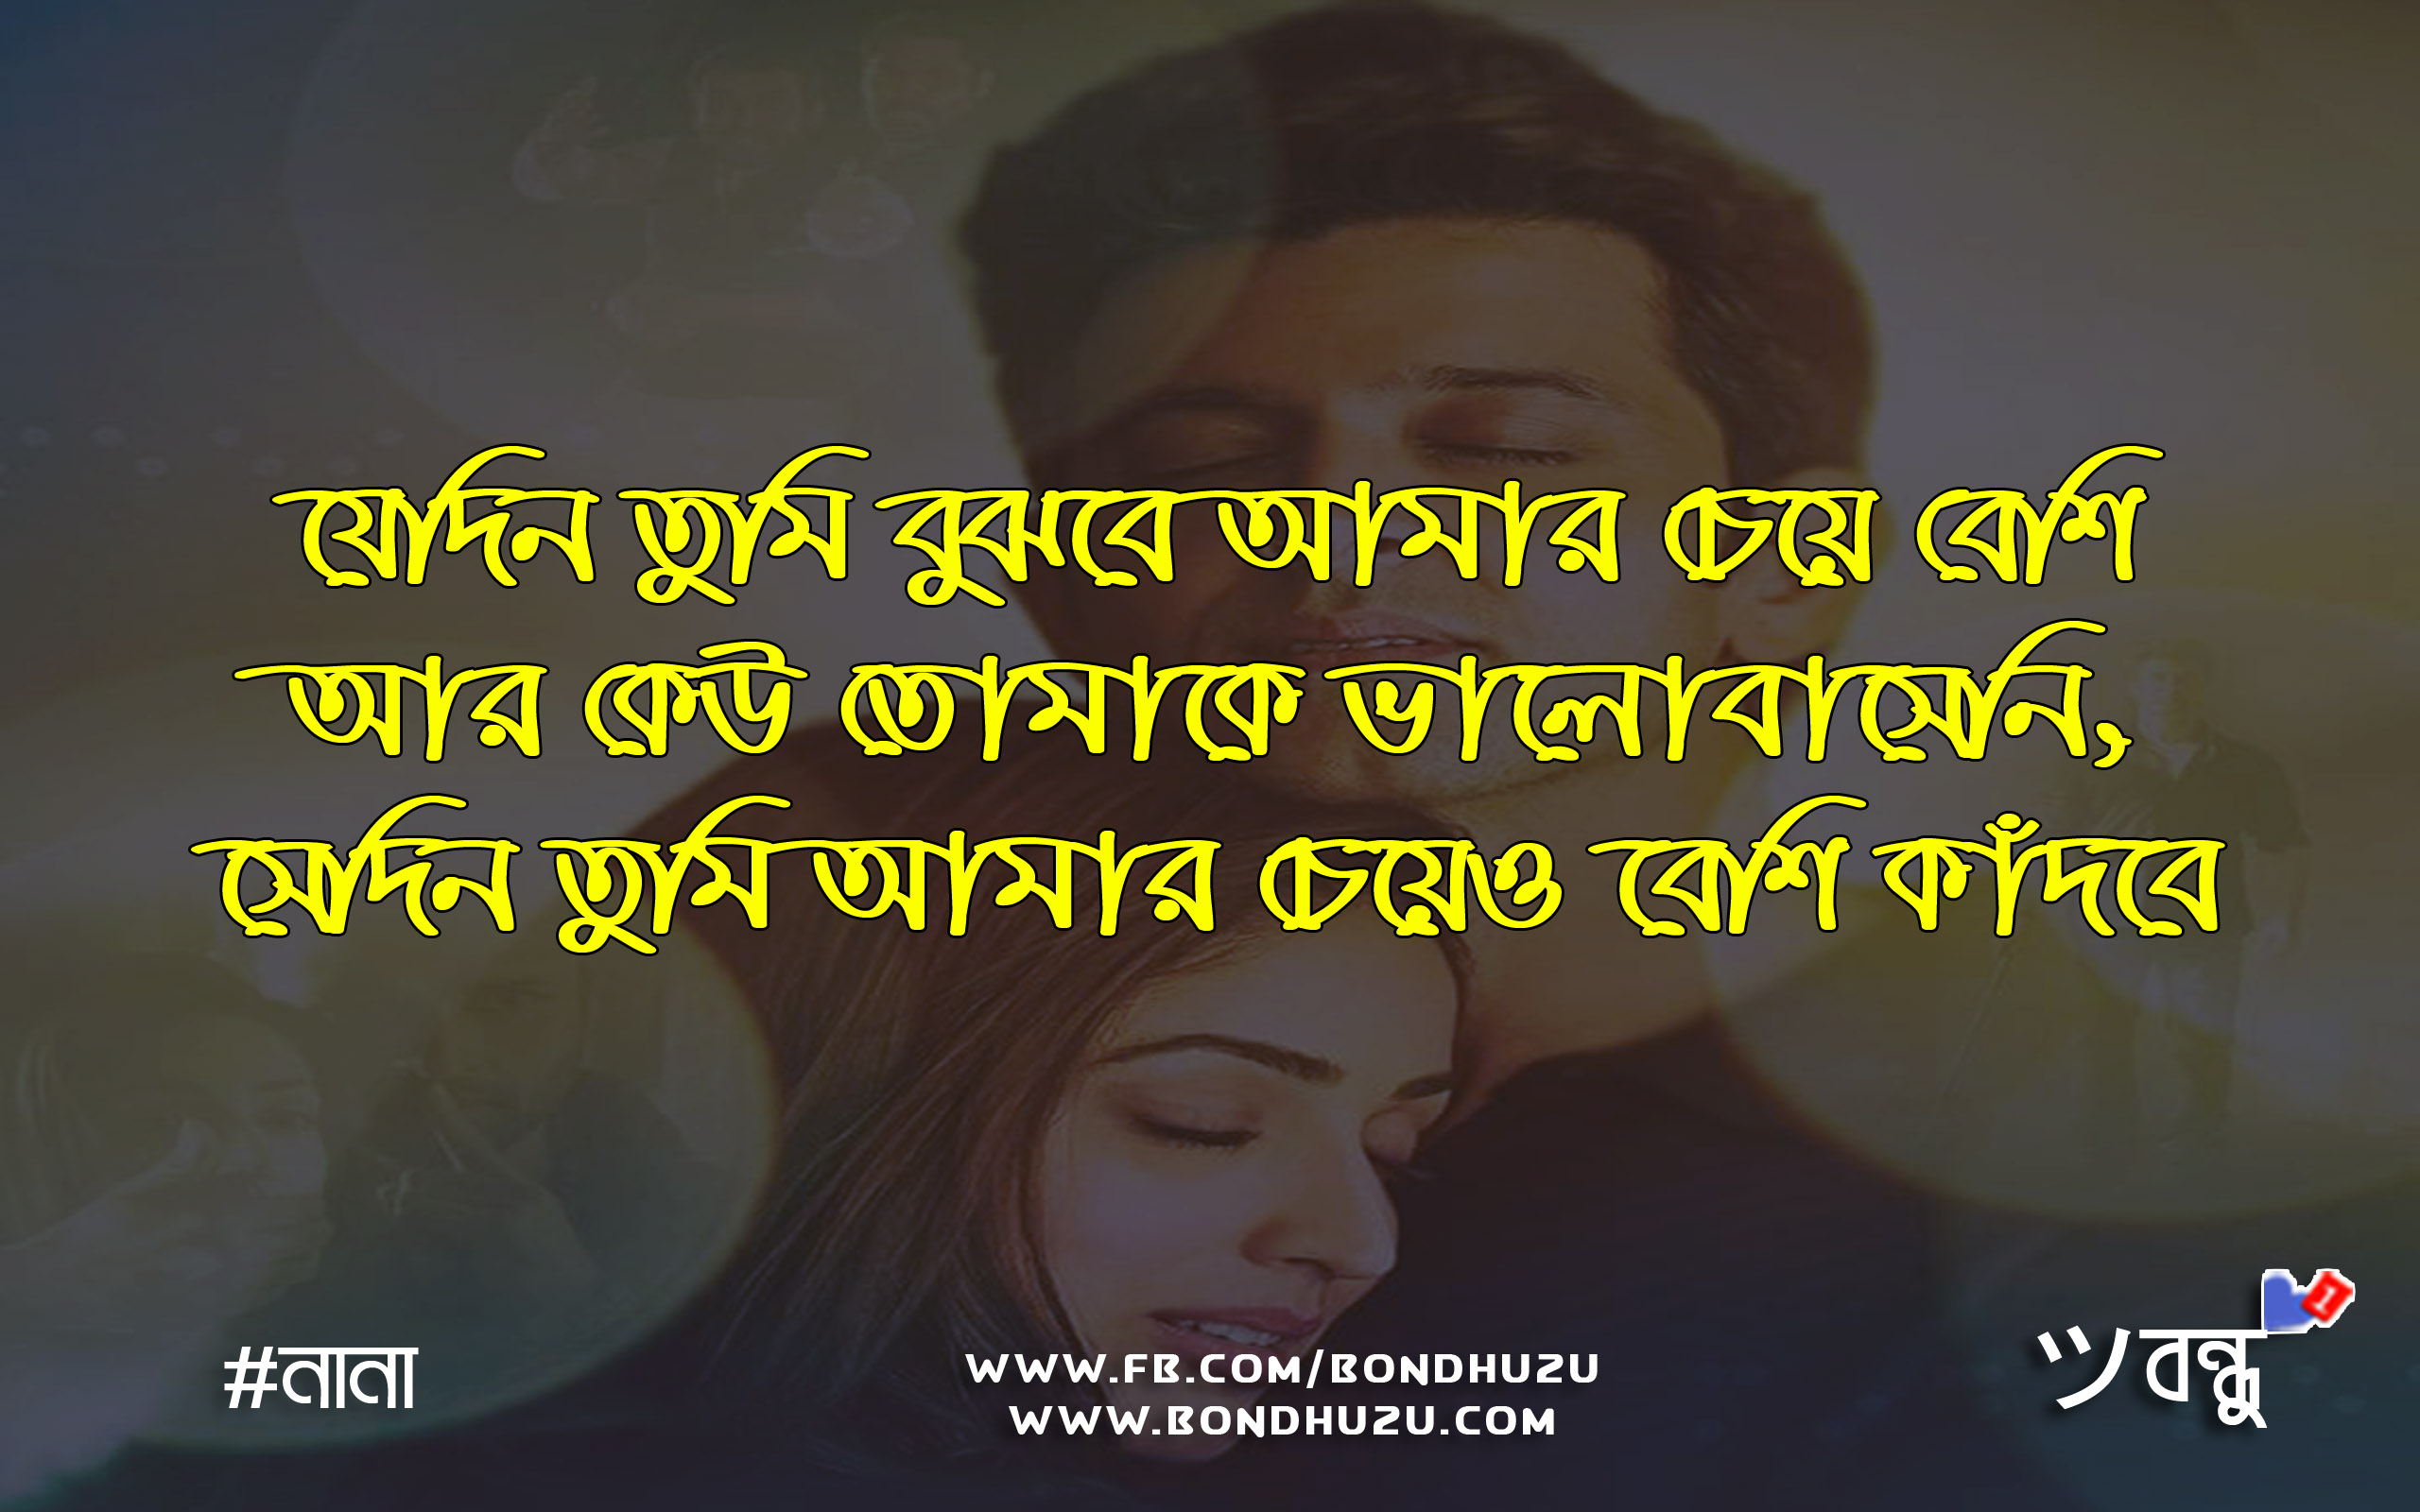 Emotional Wallpaper For Love : Emotional Love Bangla Sms Romantic Love Bangla - BONDHU2U SMS